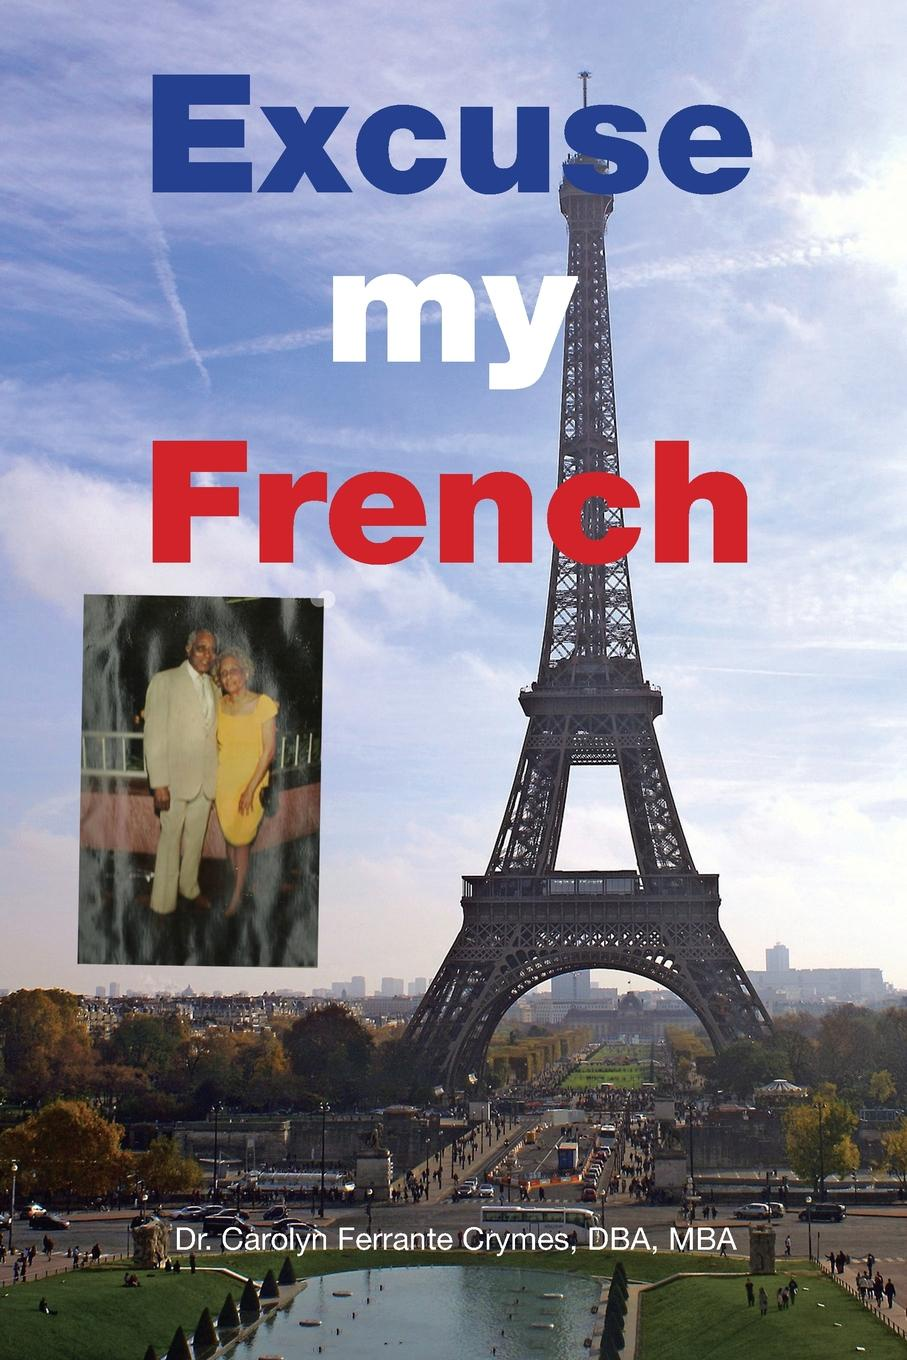 Dr. Carolyn Ferrante Crymes DBA MBA Excuse my French a poor excuse for a dragon